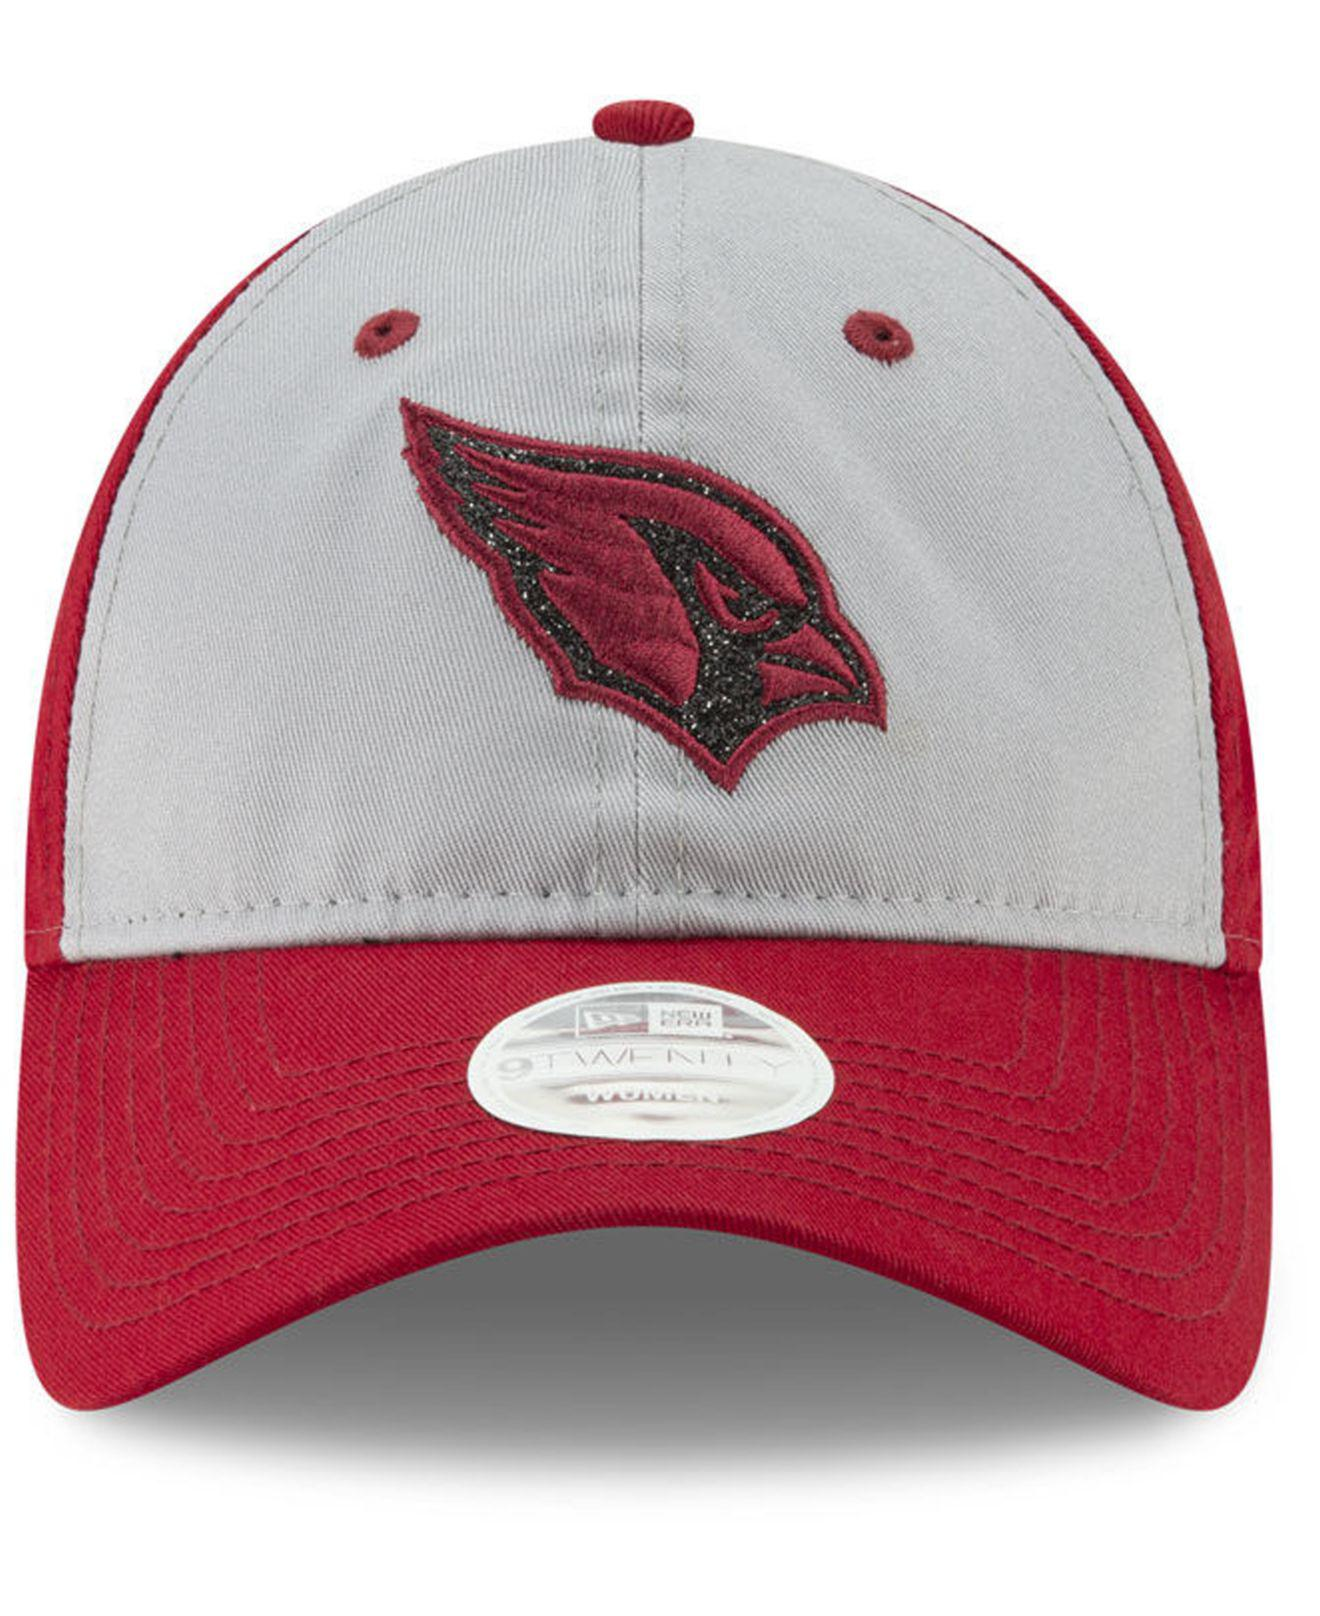 reputable site 50863 4bc10 ... clearance lyst ktz arizona cardinals gray glitter 9twenty cap in red  cb73f fb541